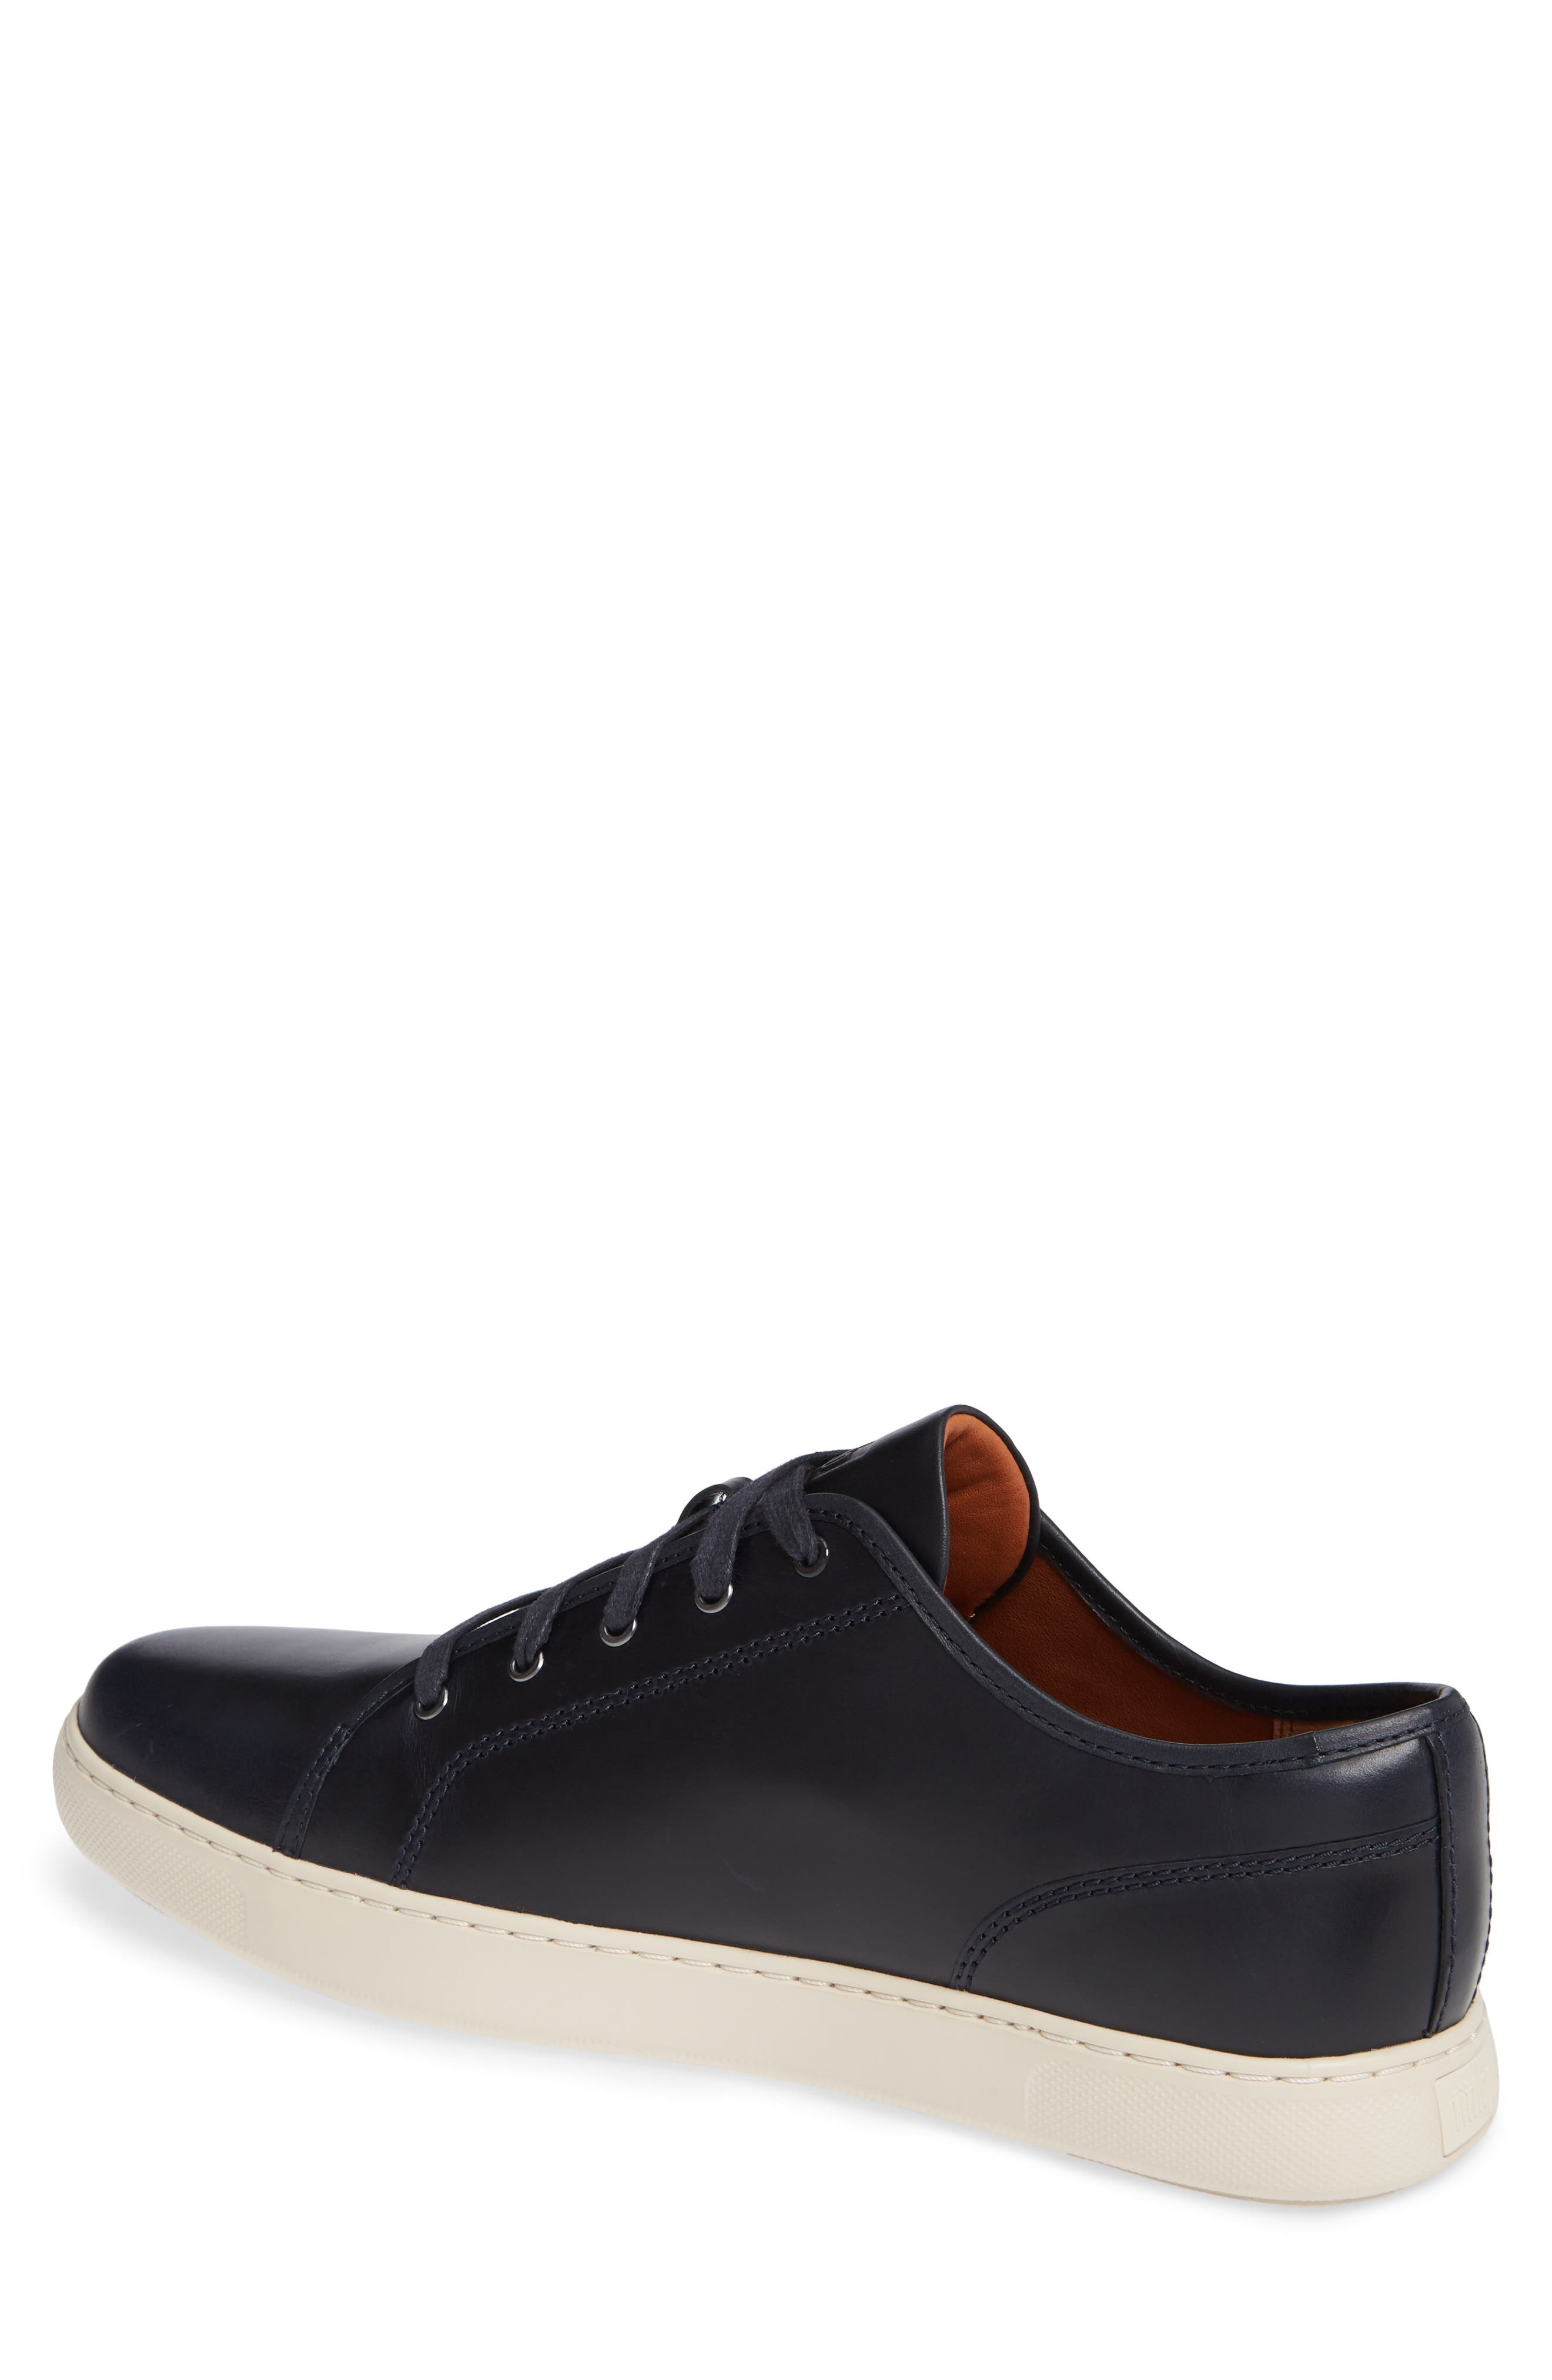 Christophe Low Top Sneaker,                             Alternate thumbnail 2, color,                             411